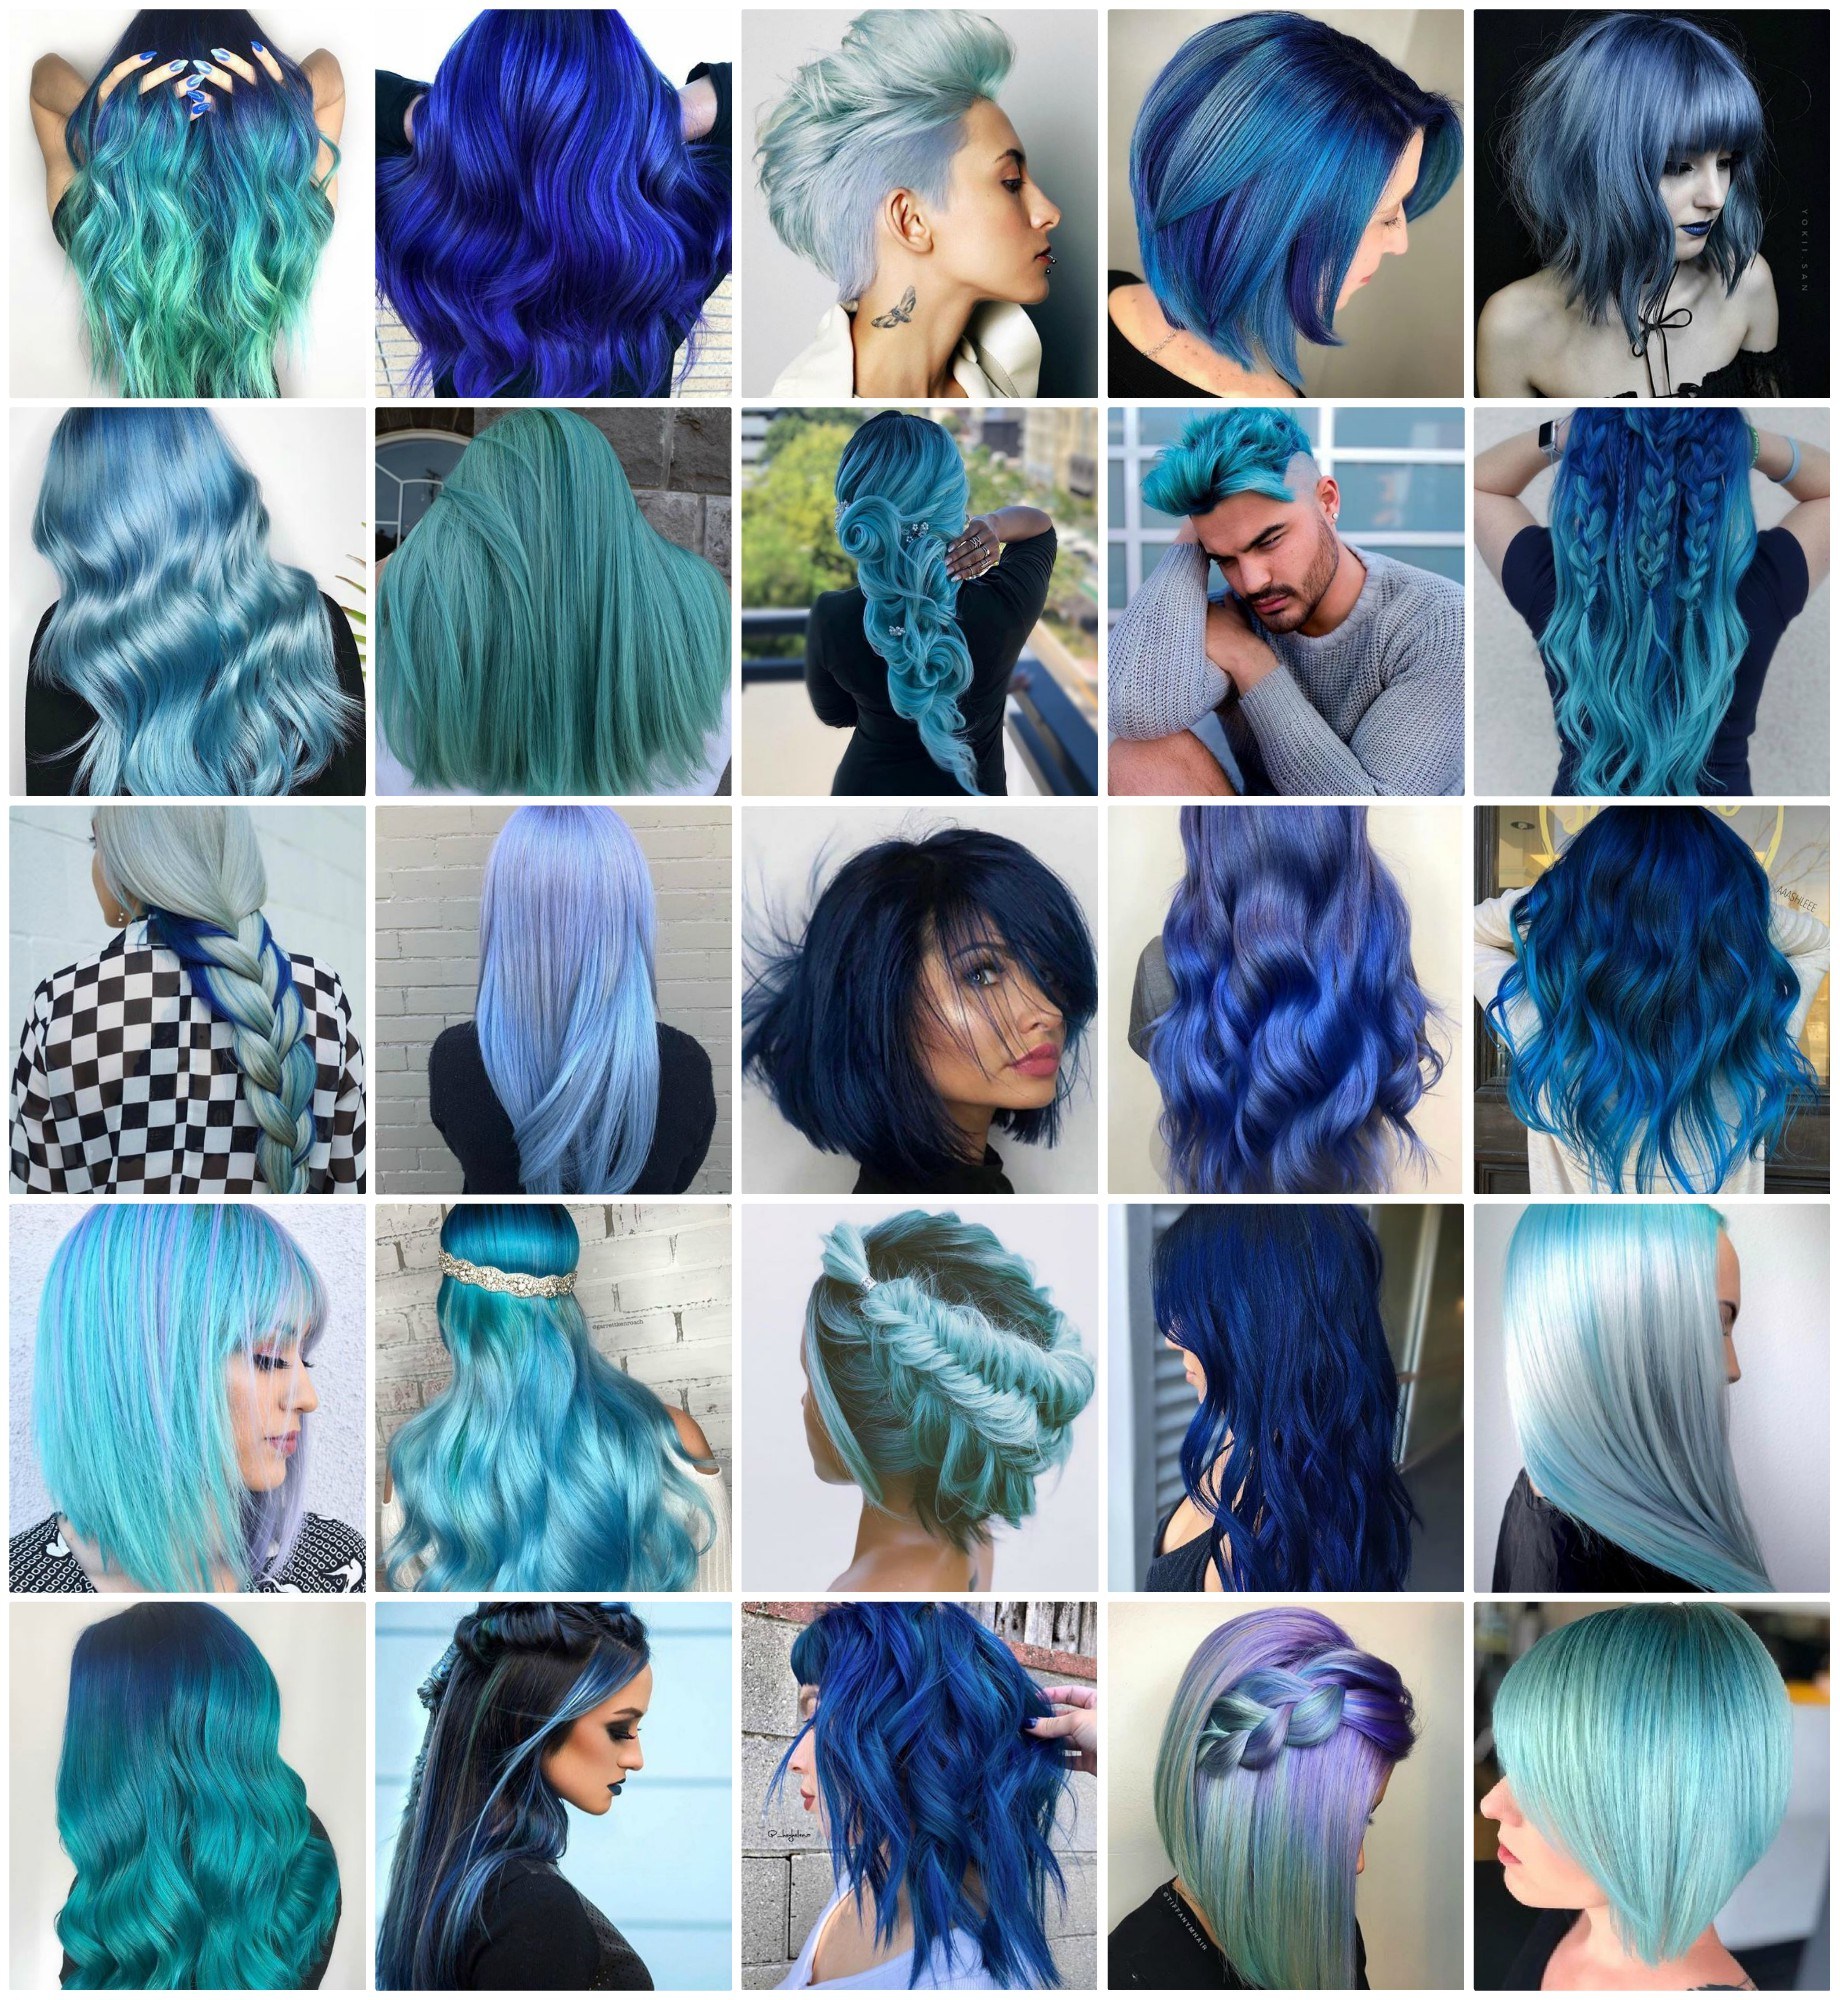 31 Blue Looks to Brighten Your Day